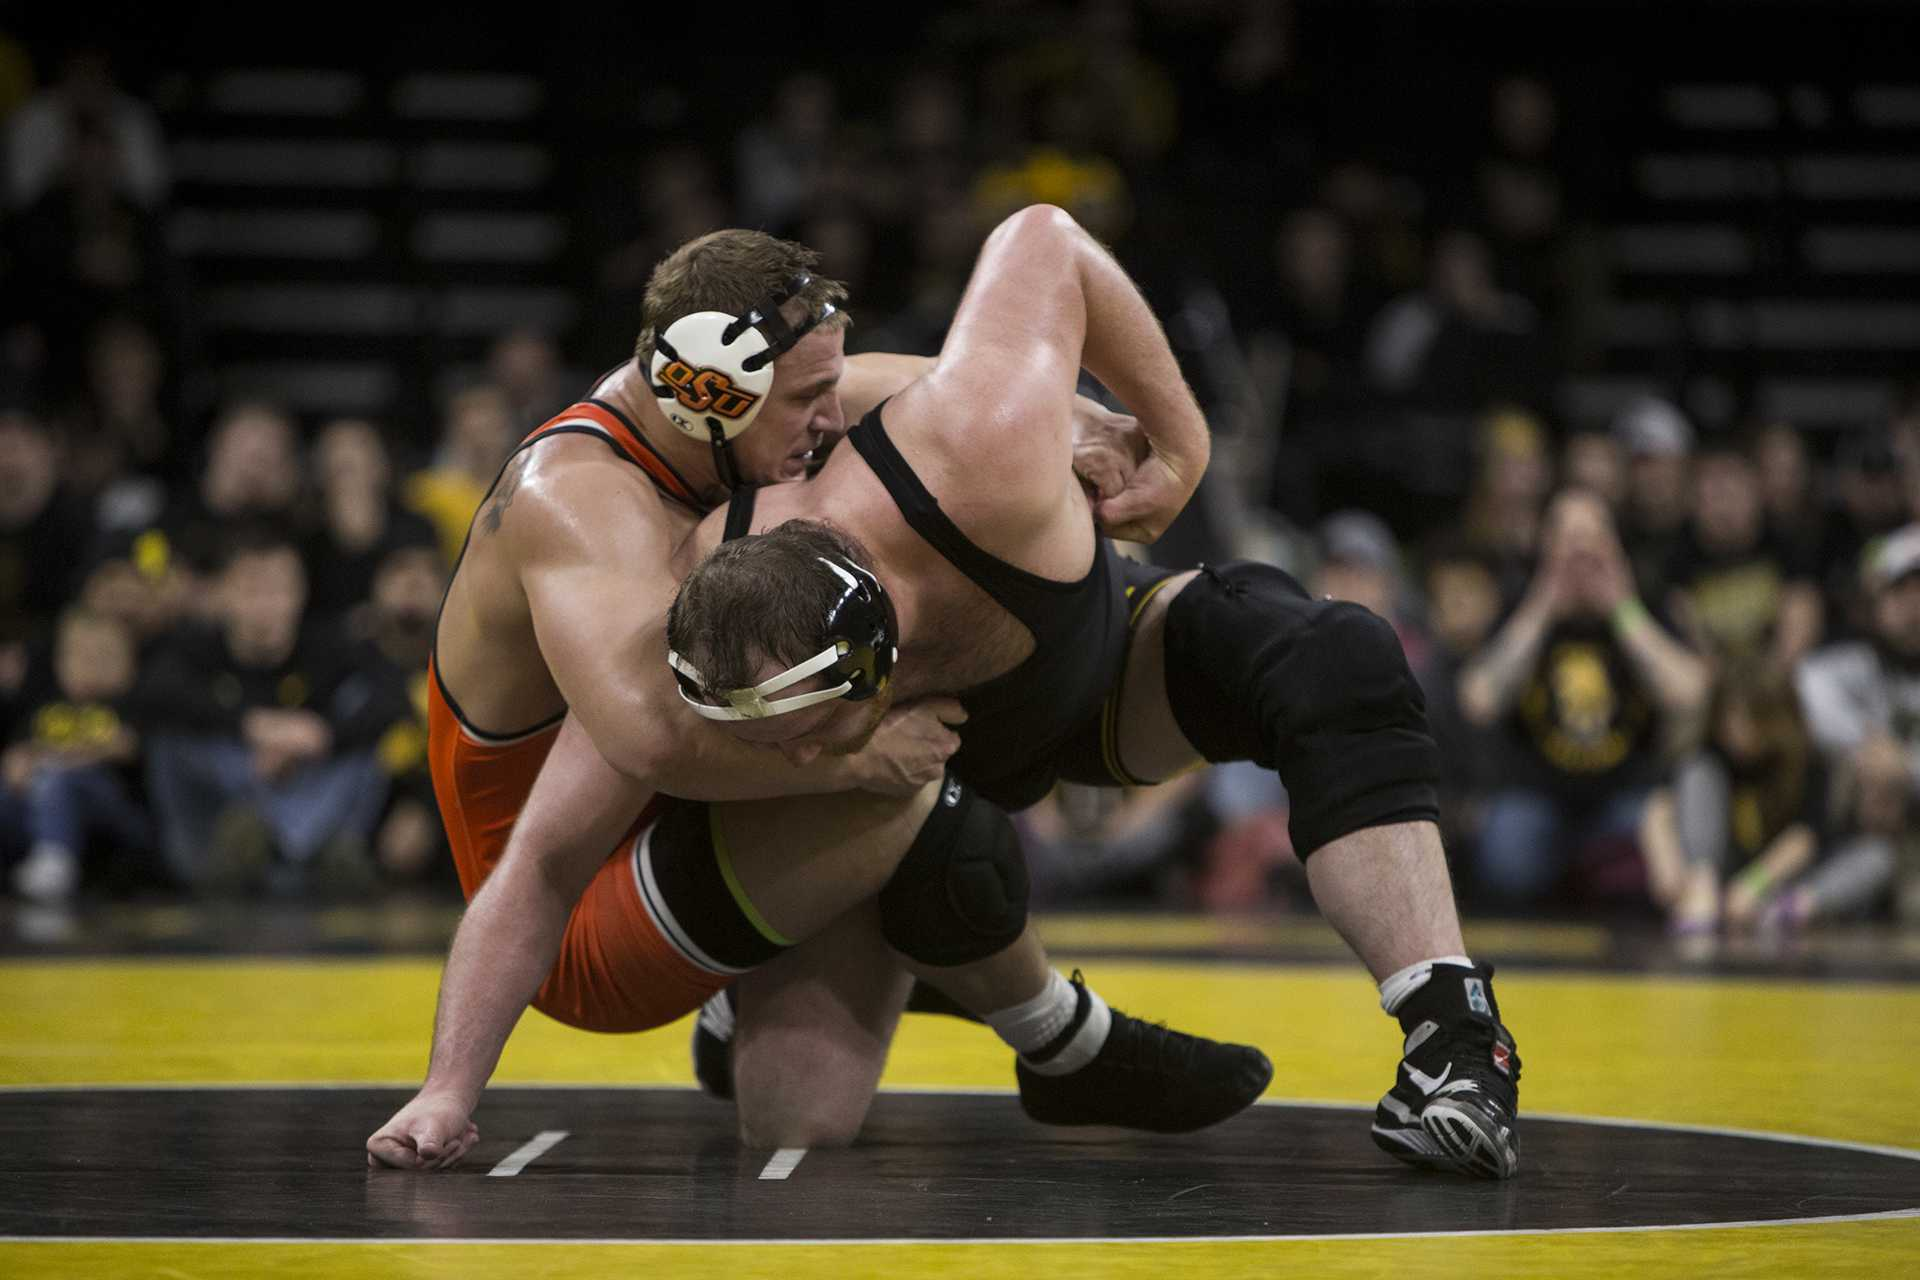 Wrestlers are shuffling weights and earning spots